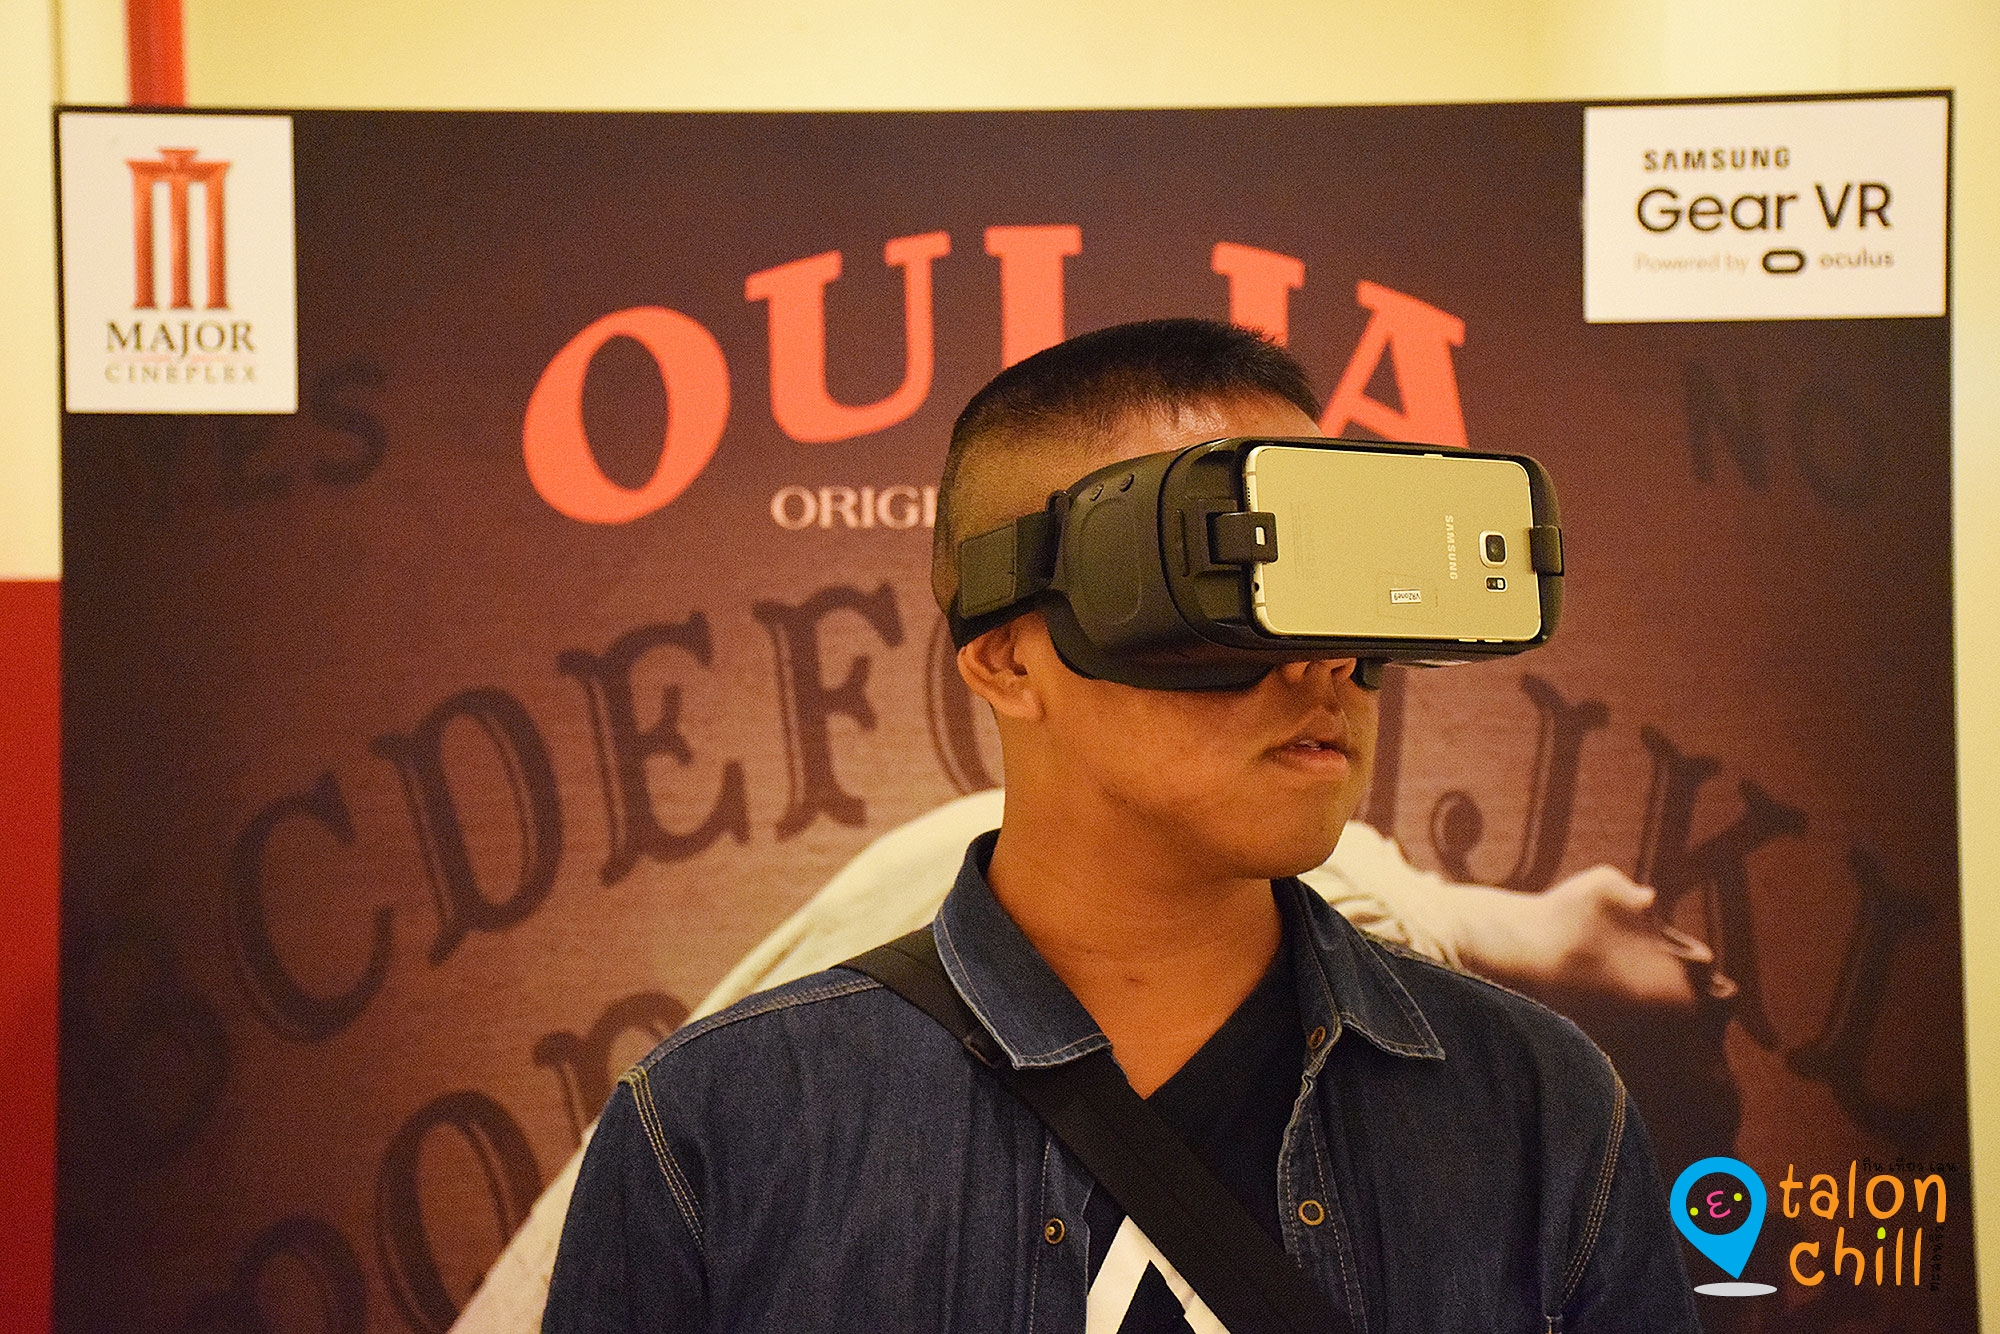 review samsung gear vr by oculus ouija 2 360 vr 23